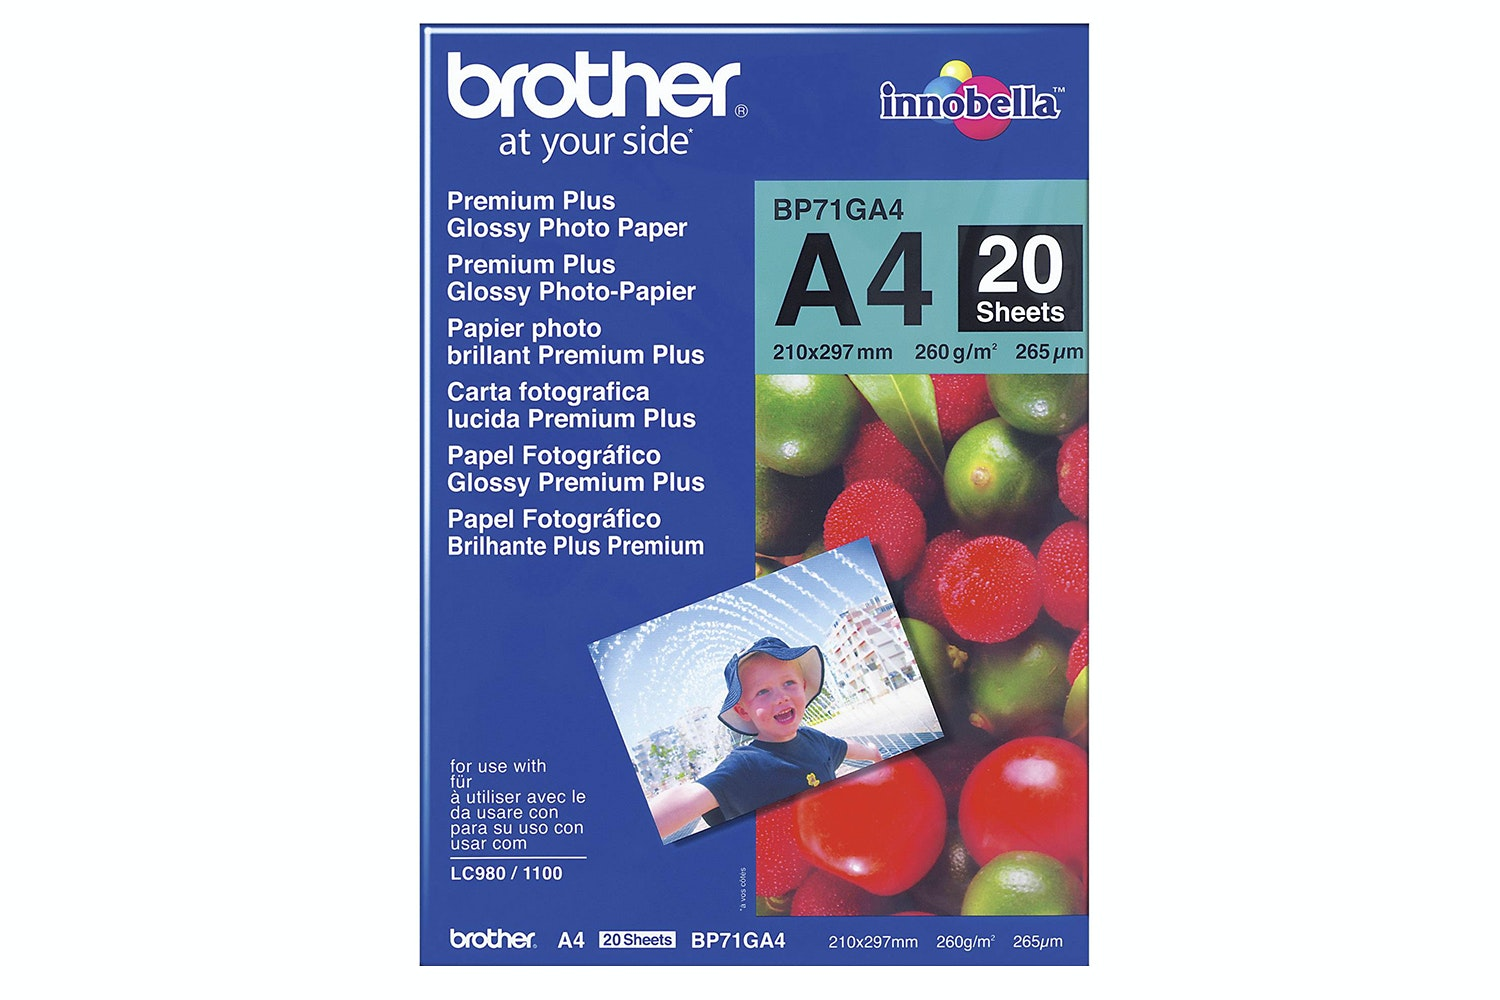 Brother BP71GA4 Innobella Glossy A4 Photo Paper